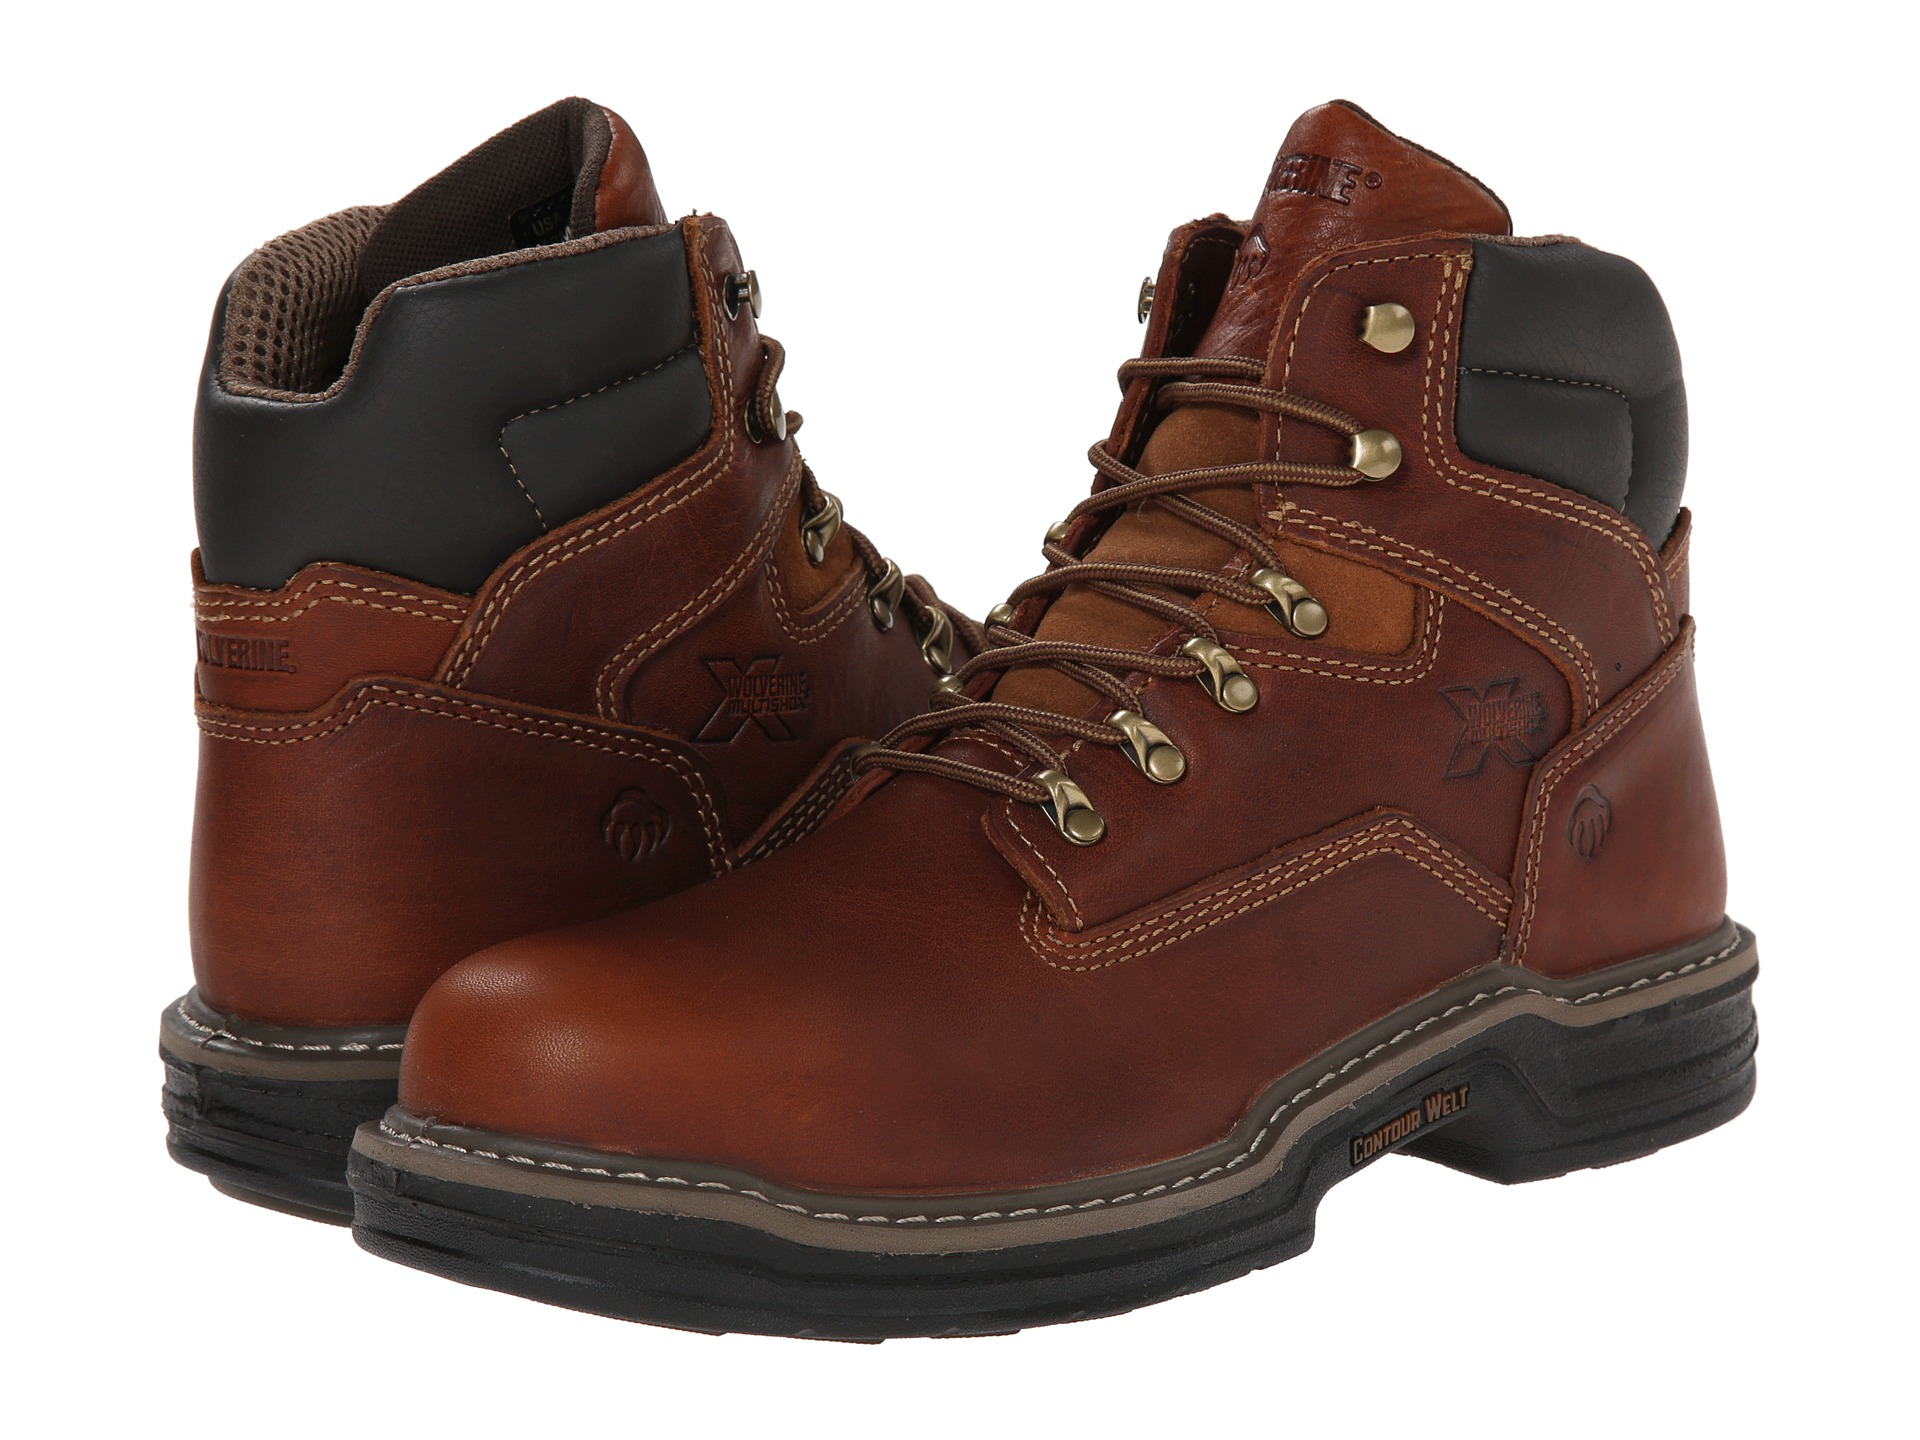 Shoes, Steel Toe | Shipped Free at Zappos